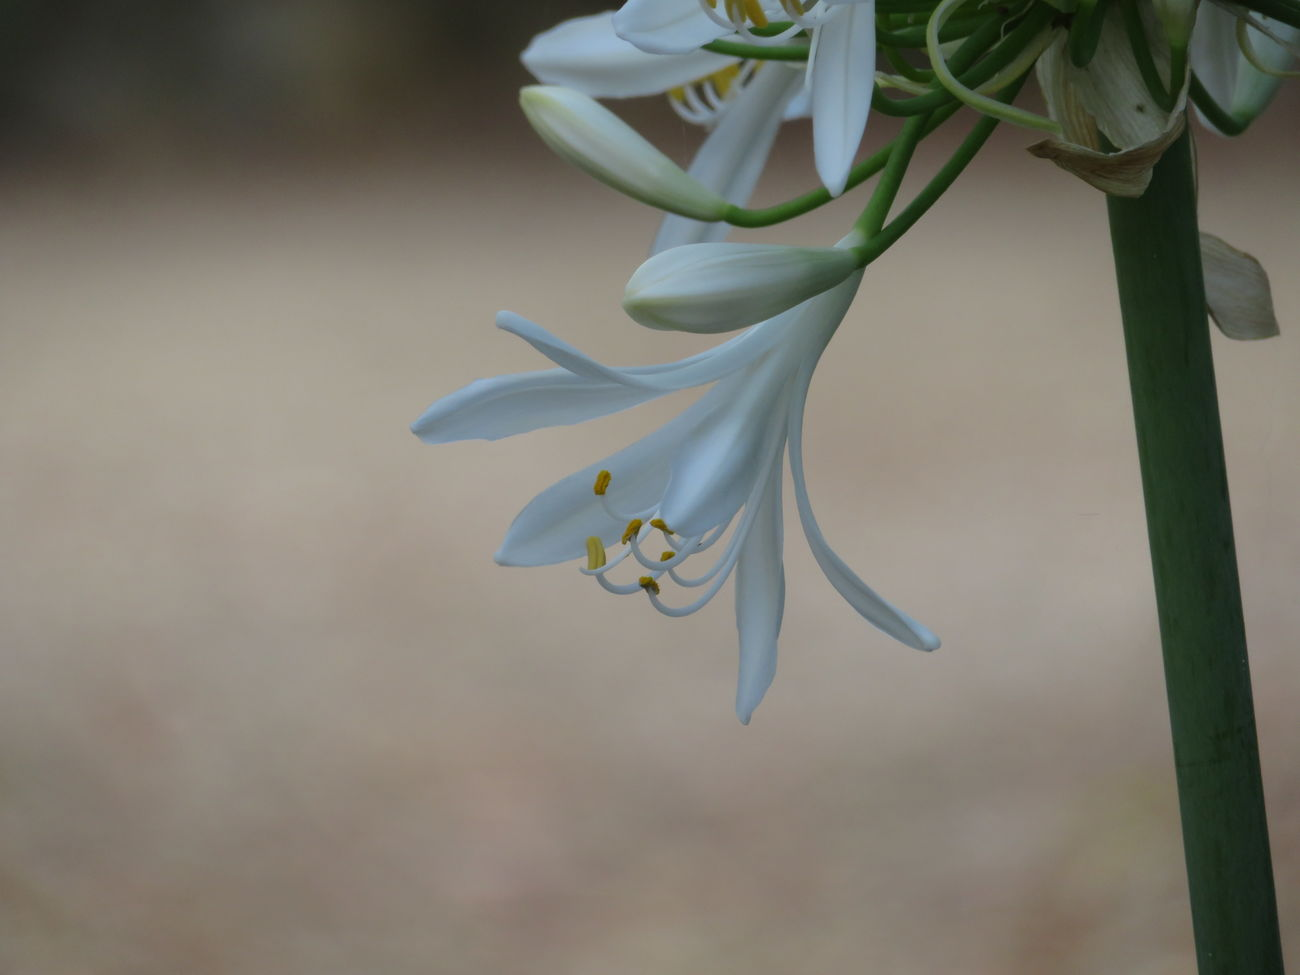 Agapanthus Plant Nature Beauty In Nature White Close-up Flower Head No People Fragility Macro No Filter No Edit Calmness Simplicity Quiet Moments In My Garden Minimalism Nature Photography Flower Collection